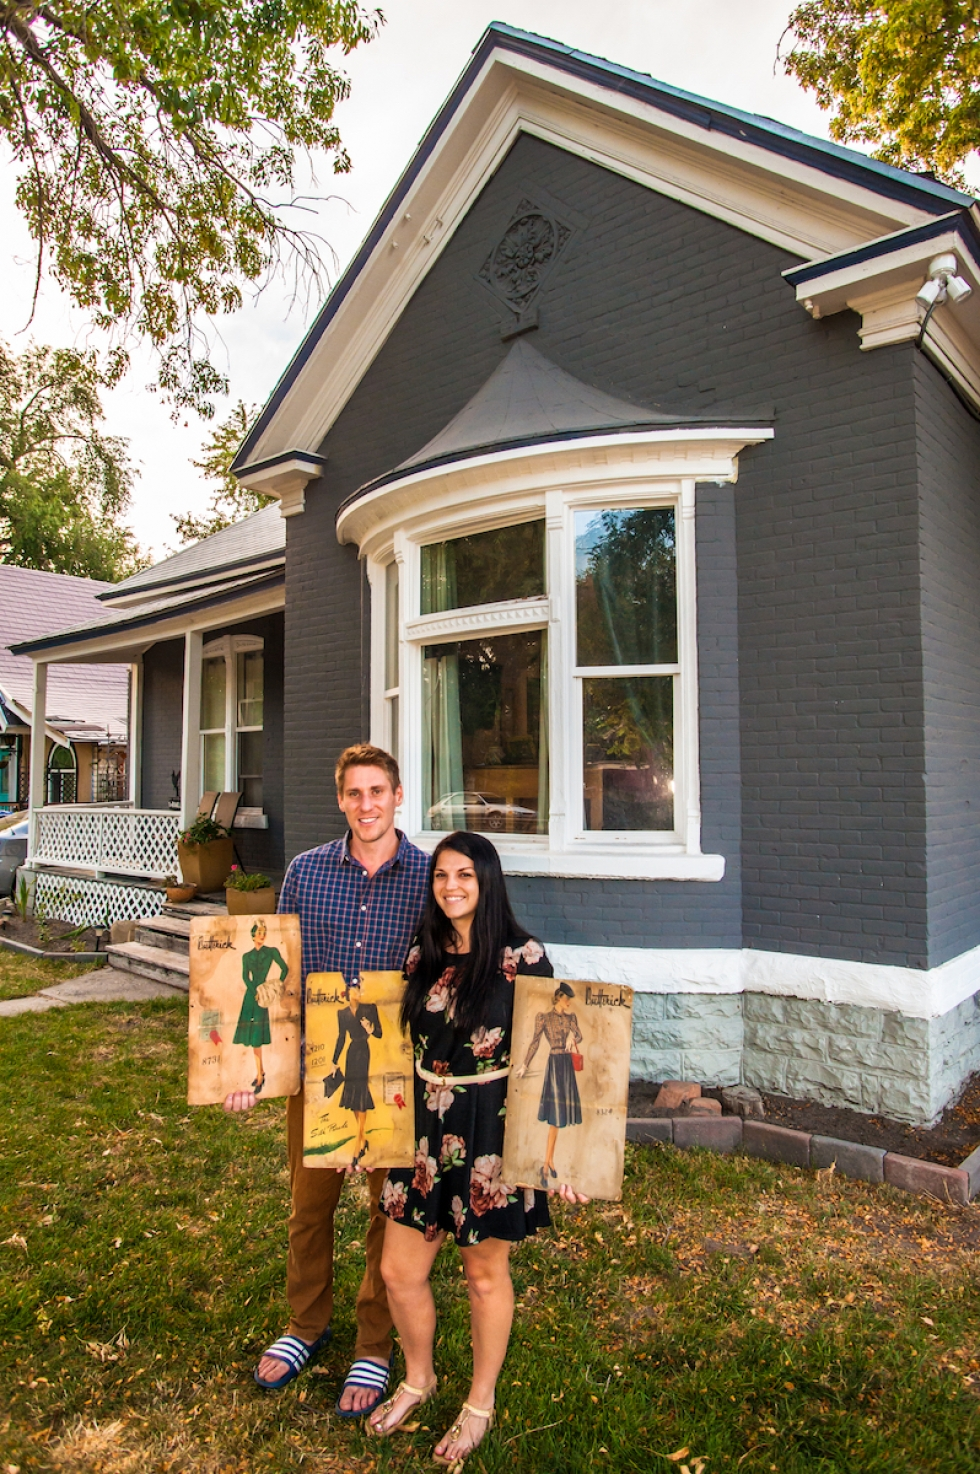 When Taylor and Ramie tore down an old, dilapidated garage on their property, they found some old, 1950s sewing patterns that had been used as insulation in between the walls.